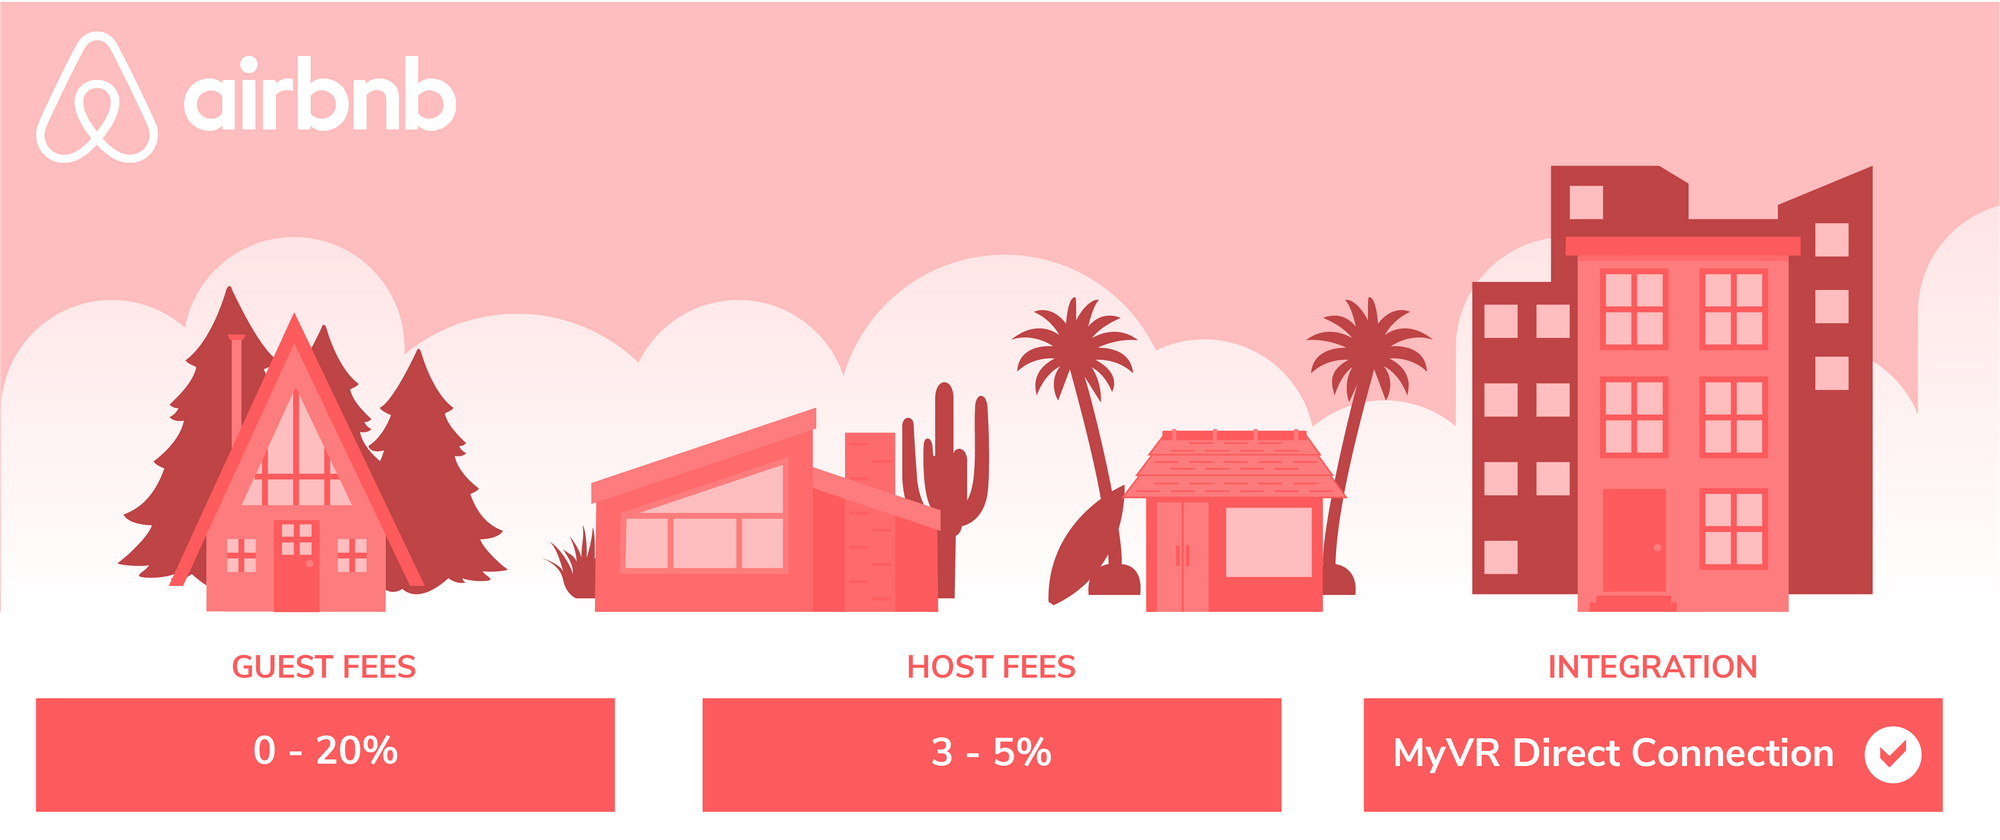 Airbnb Host Fees, Guest Fees Explained - MyVR